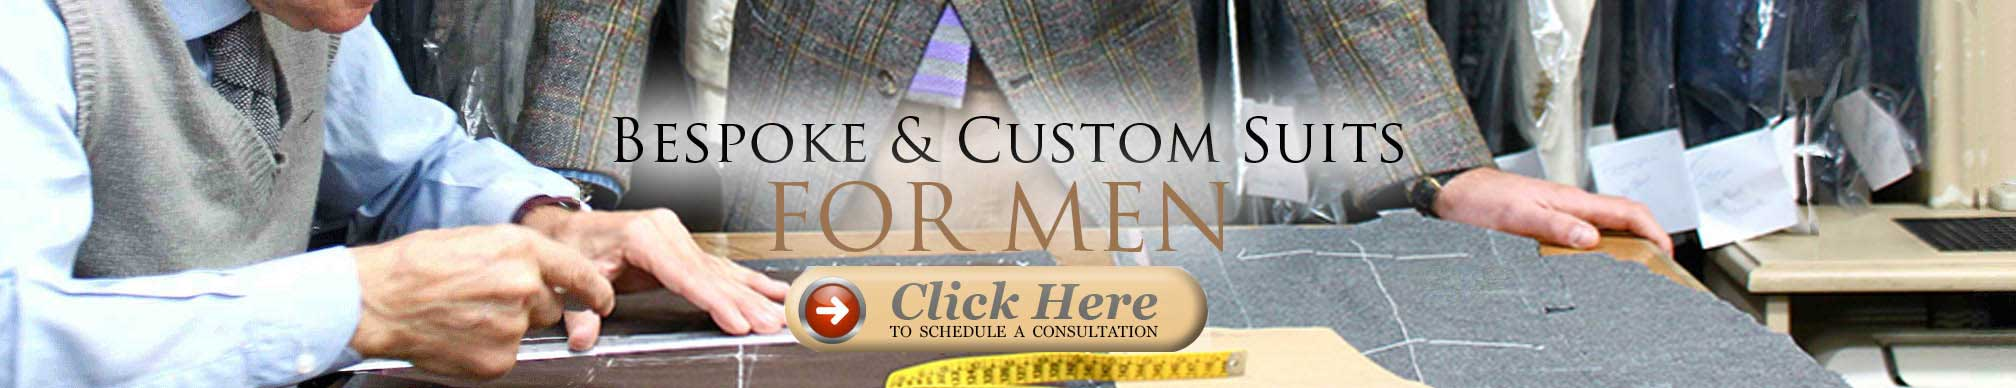 Bespoke and custom suits